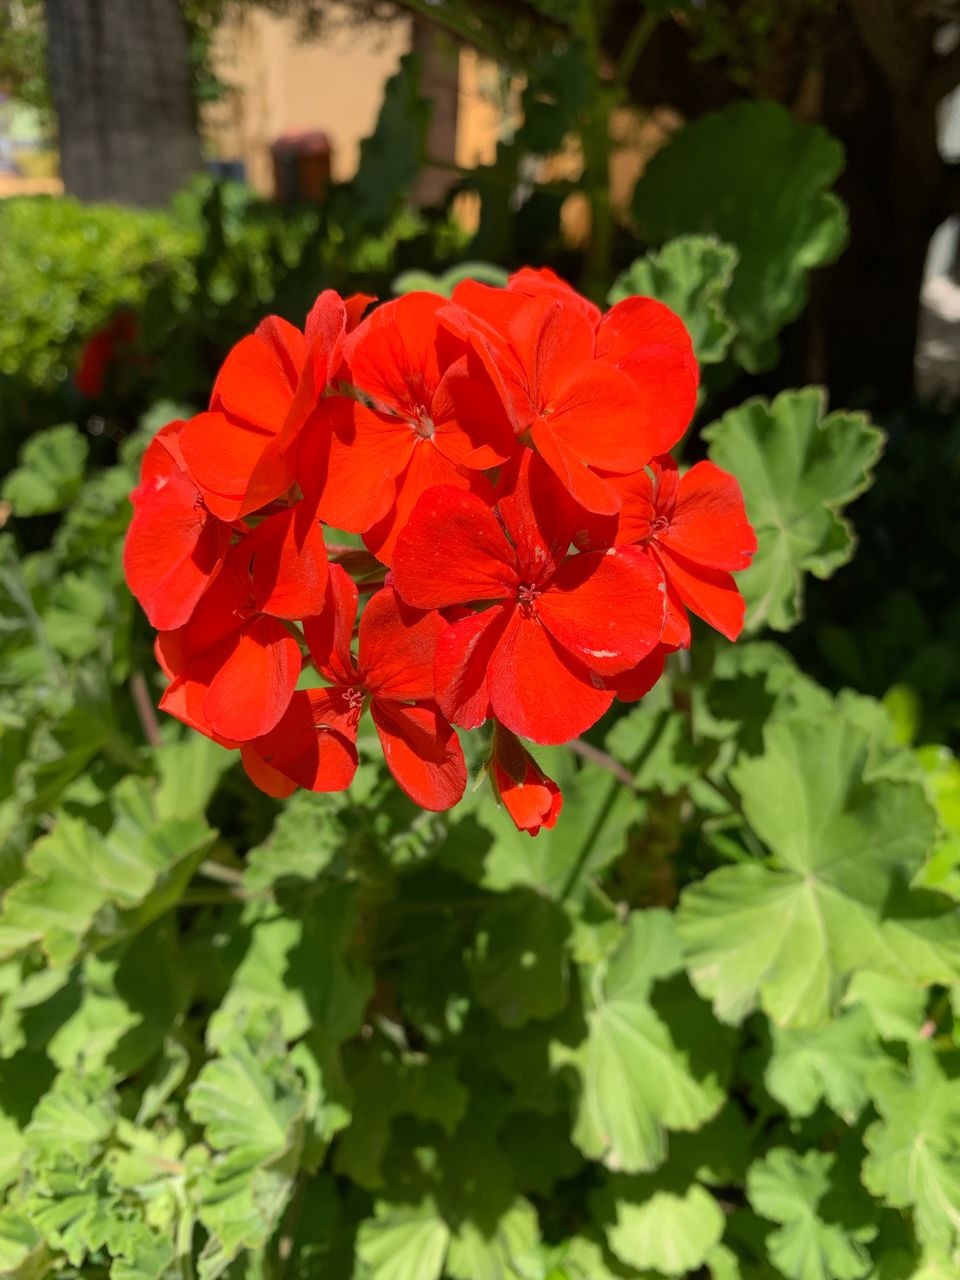 flowering plant, flower, beauty in nature, plant, vulnerability, fragility, petal, growth, red, inflorescence, freshness, flower head, close-up, nature, focus on foreground, day, green color, plant part, no people, leaf, outdoors